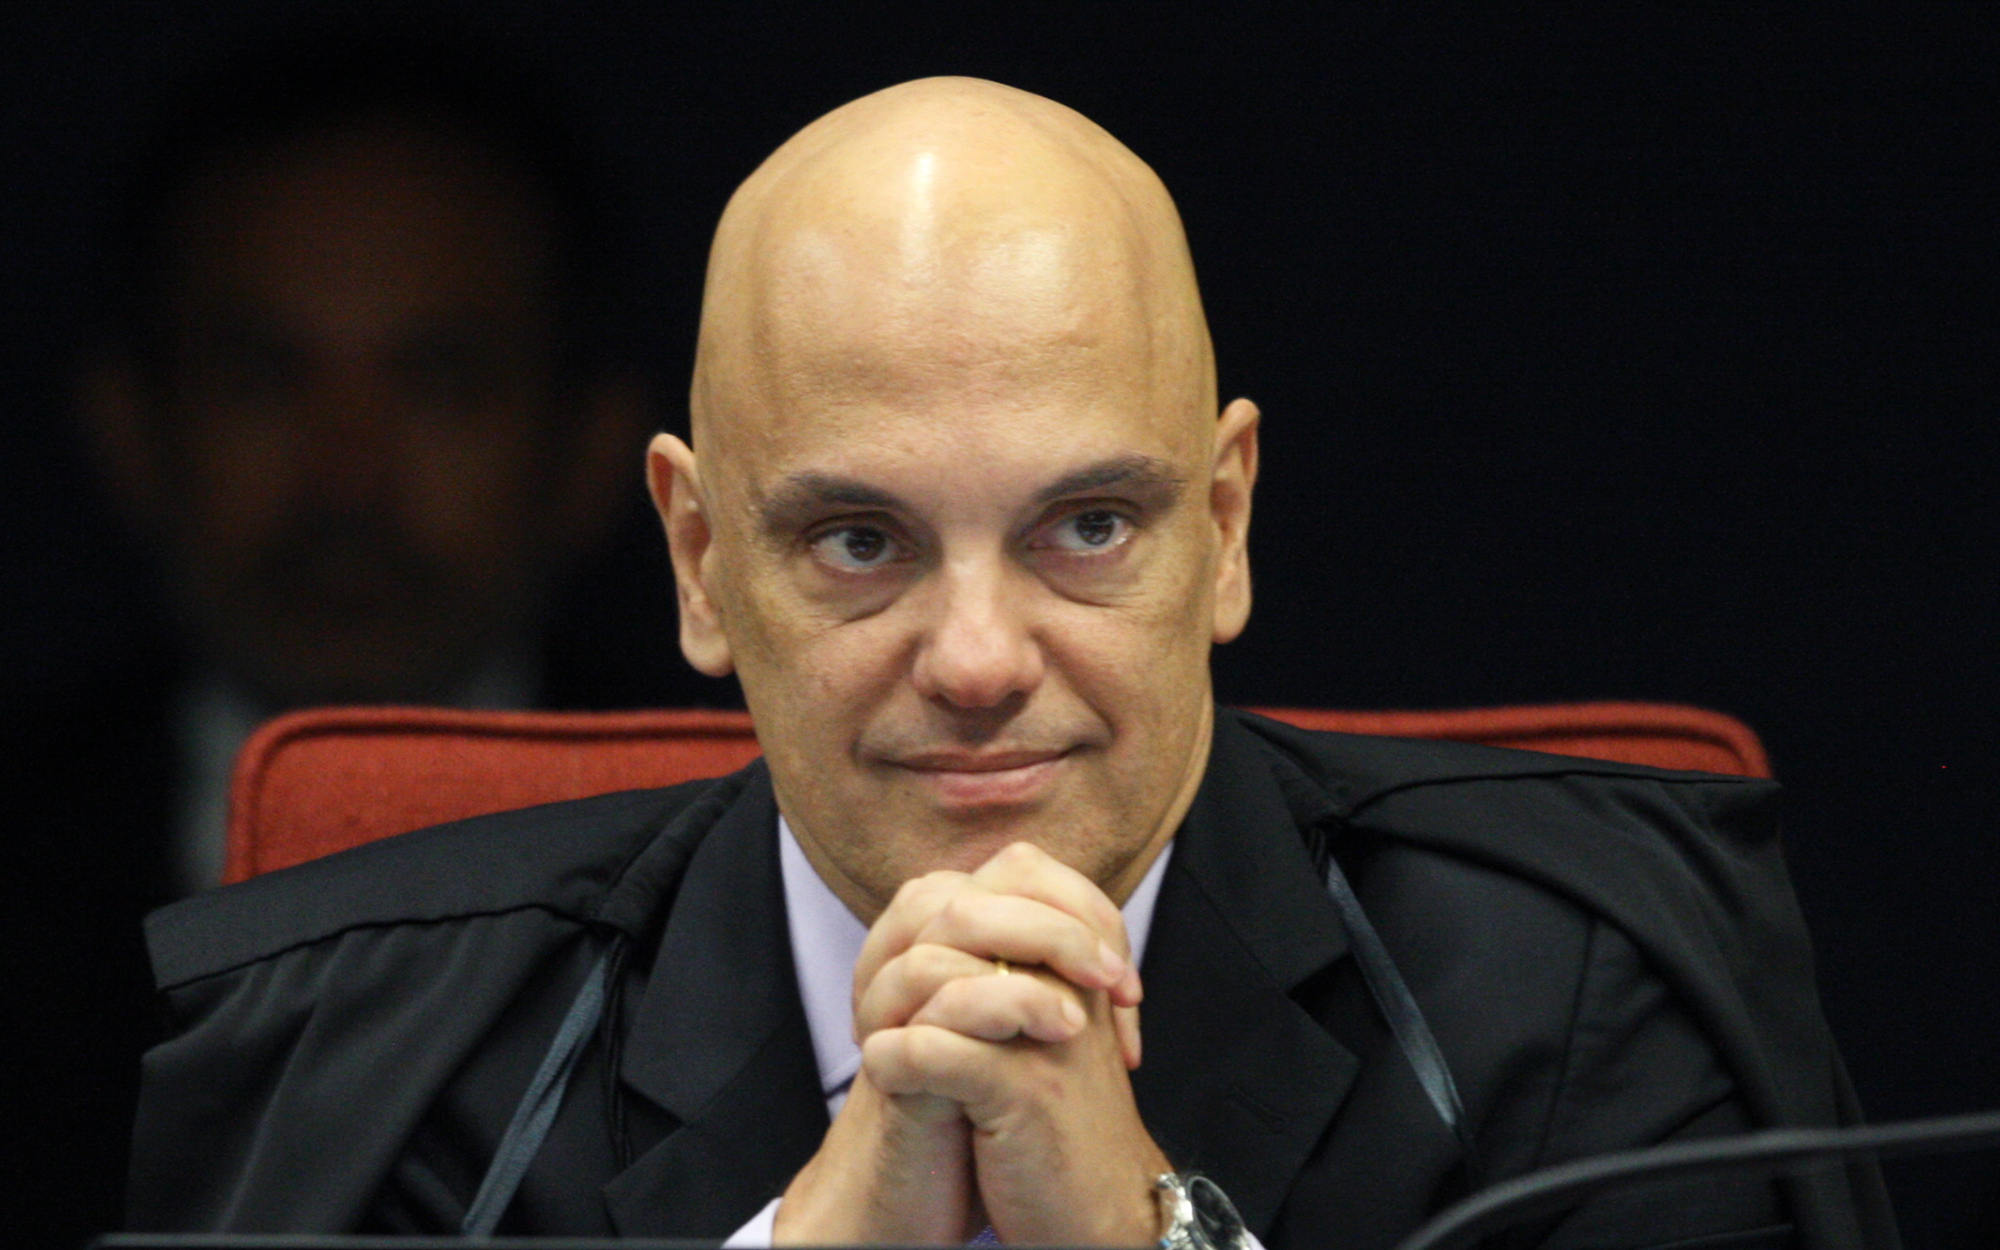 Decisão do ministro Alexandre de Moraes é classificada como censura